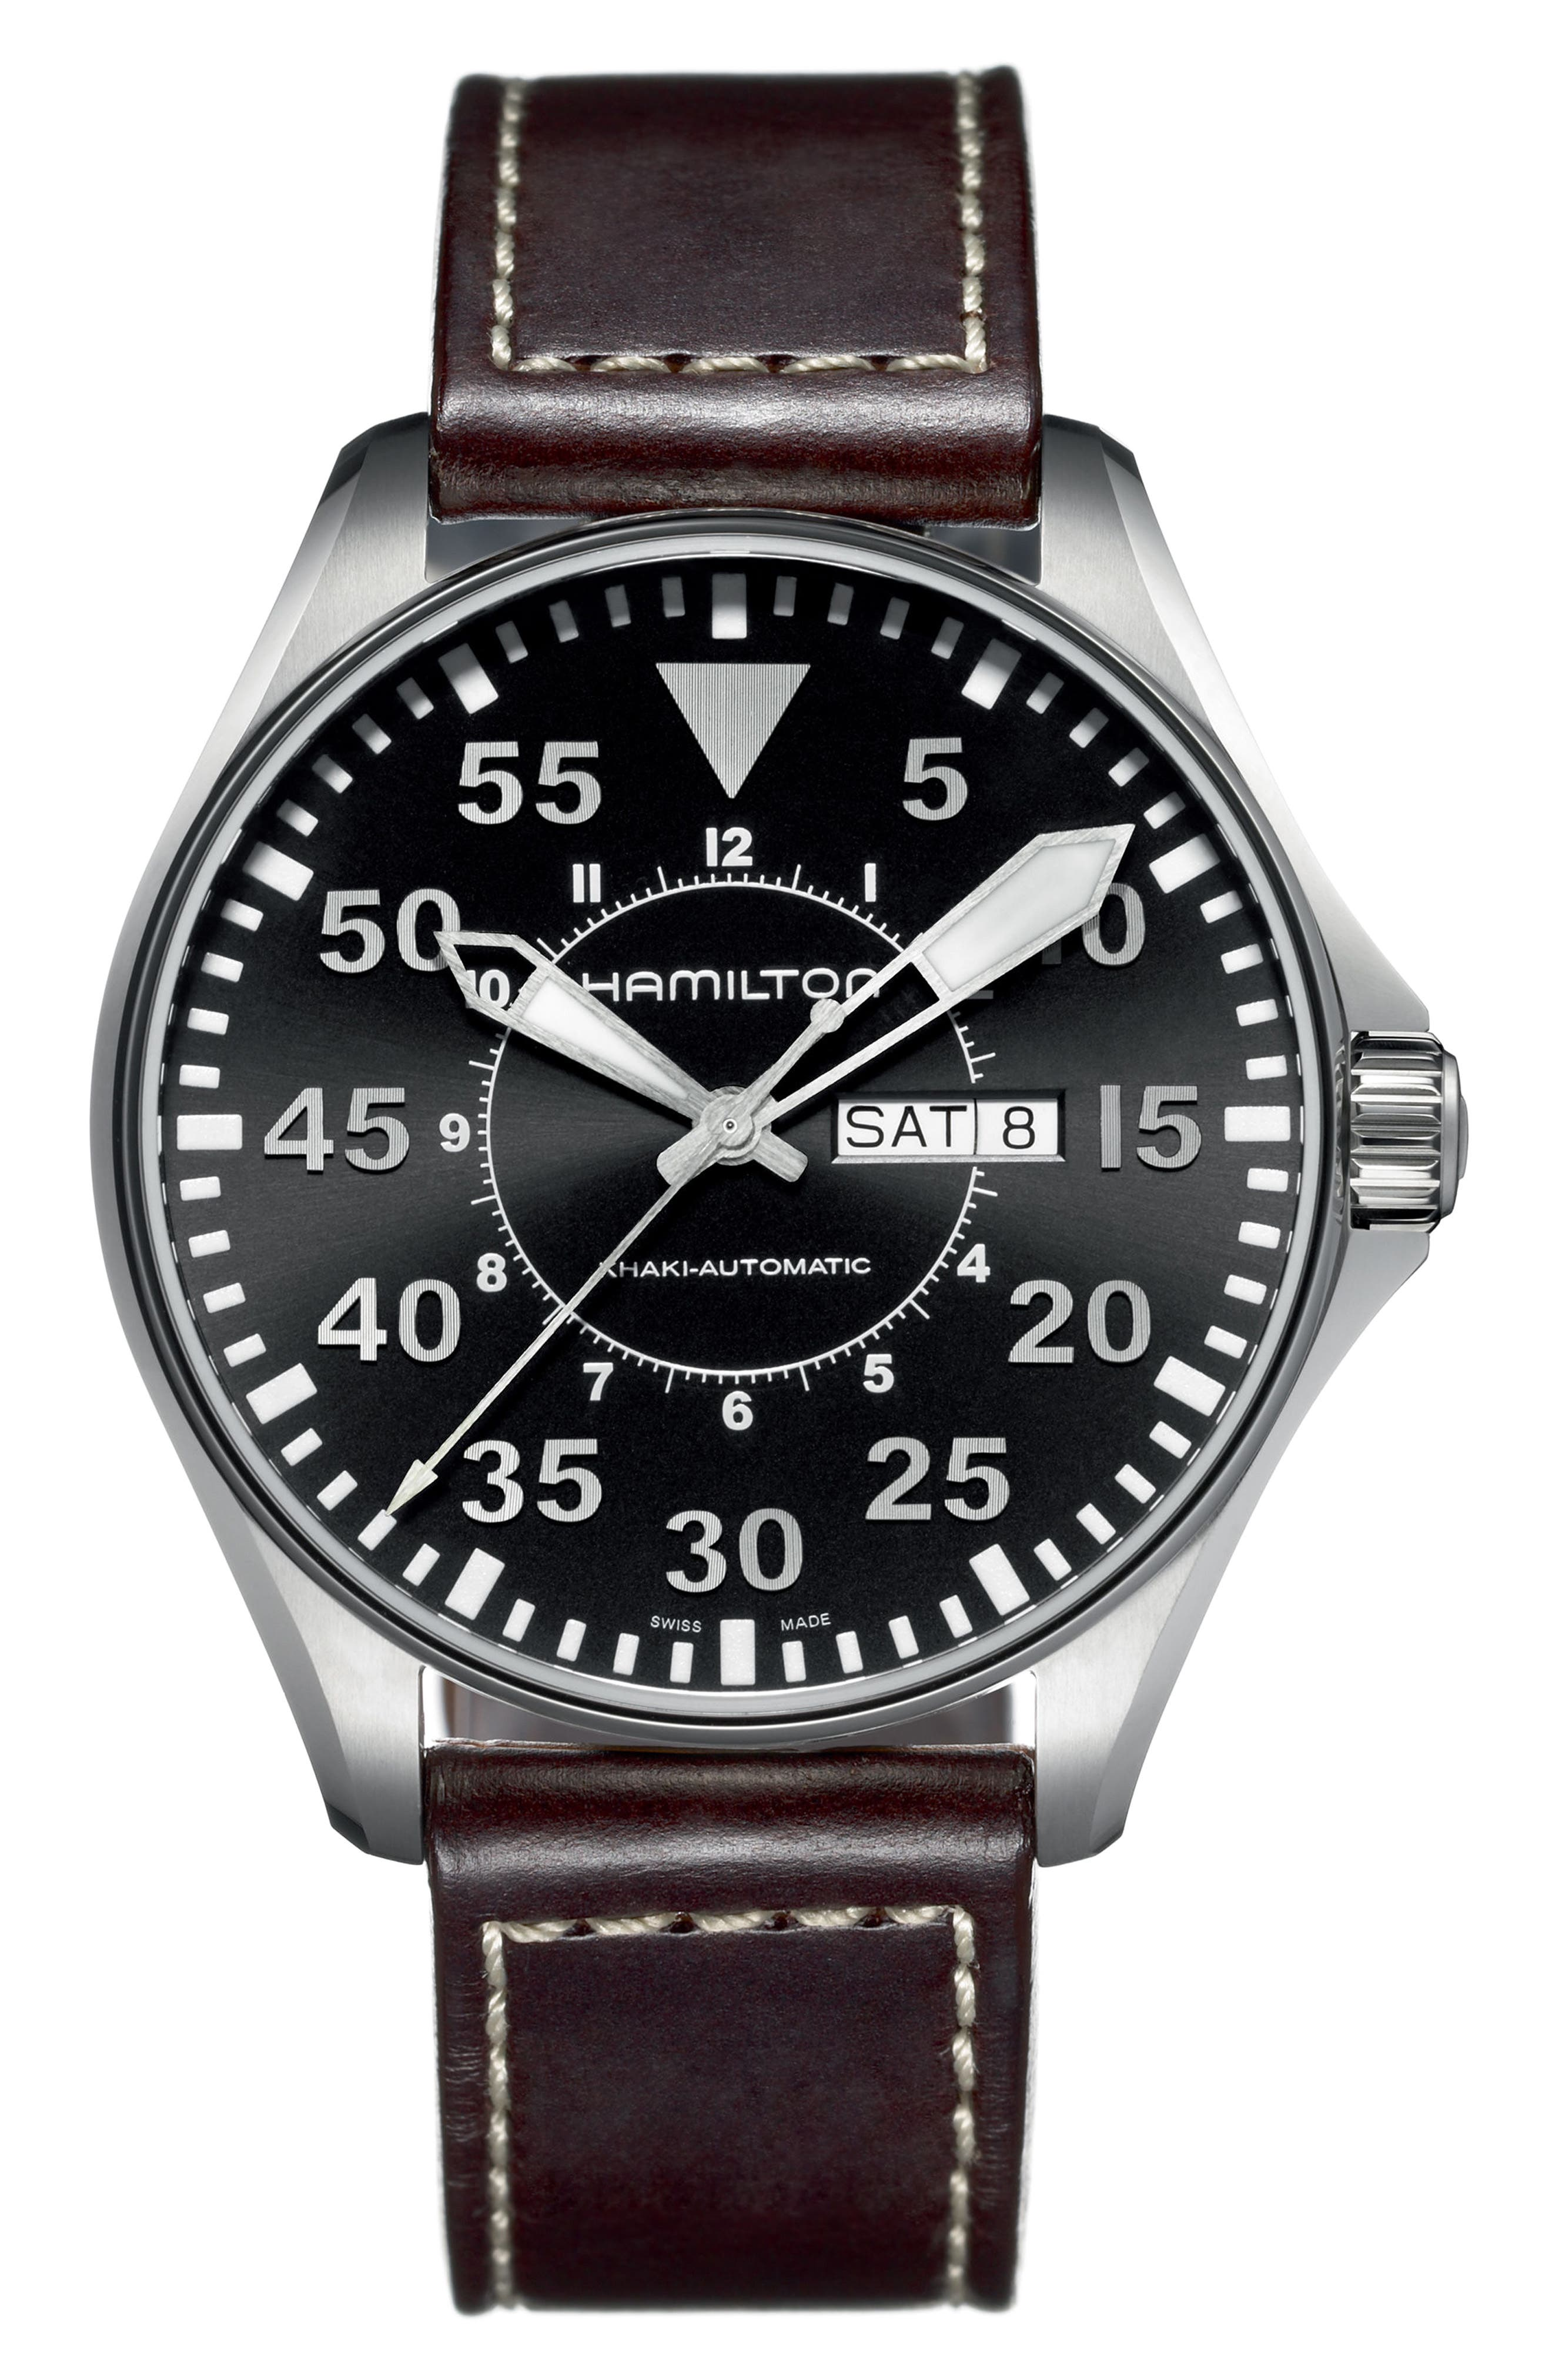 Main Image - Hamilton Khaki Aviation Automatic Leather Strap Watch, 46mm